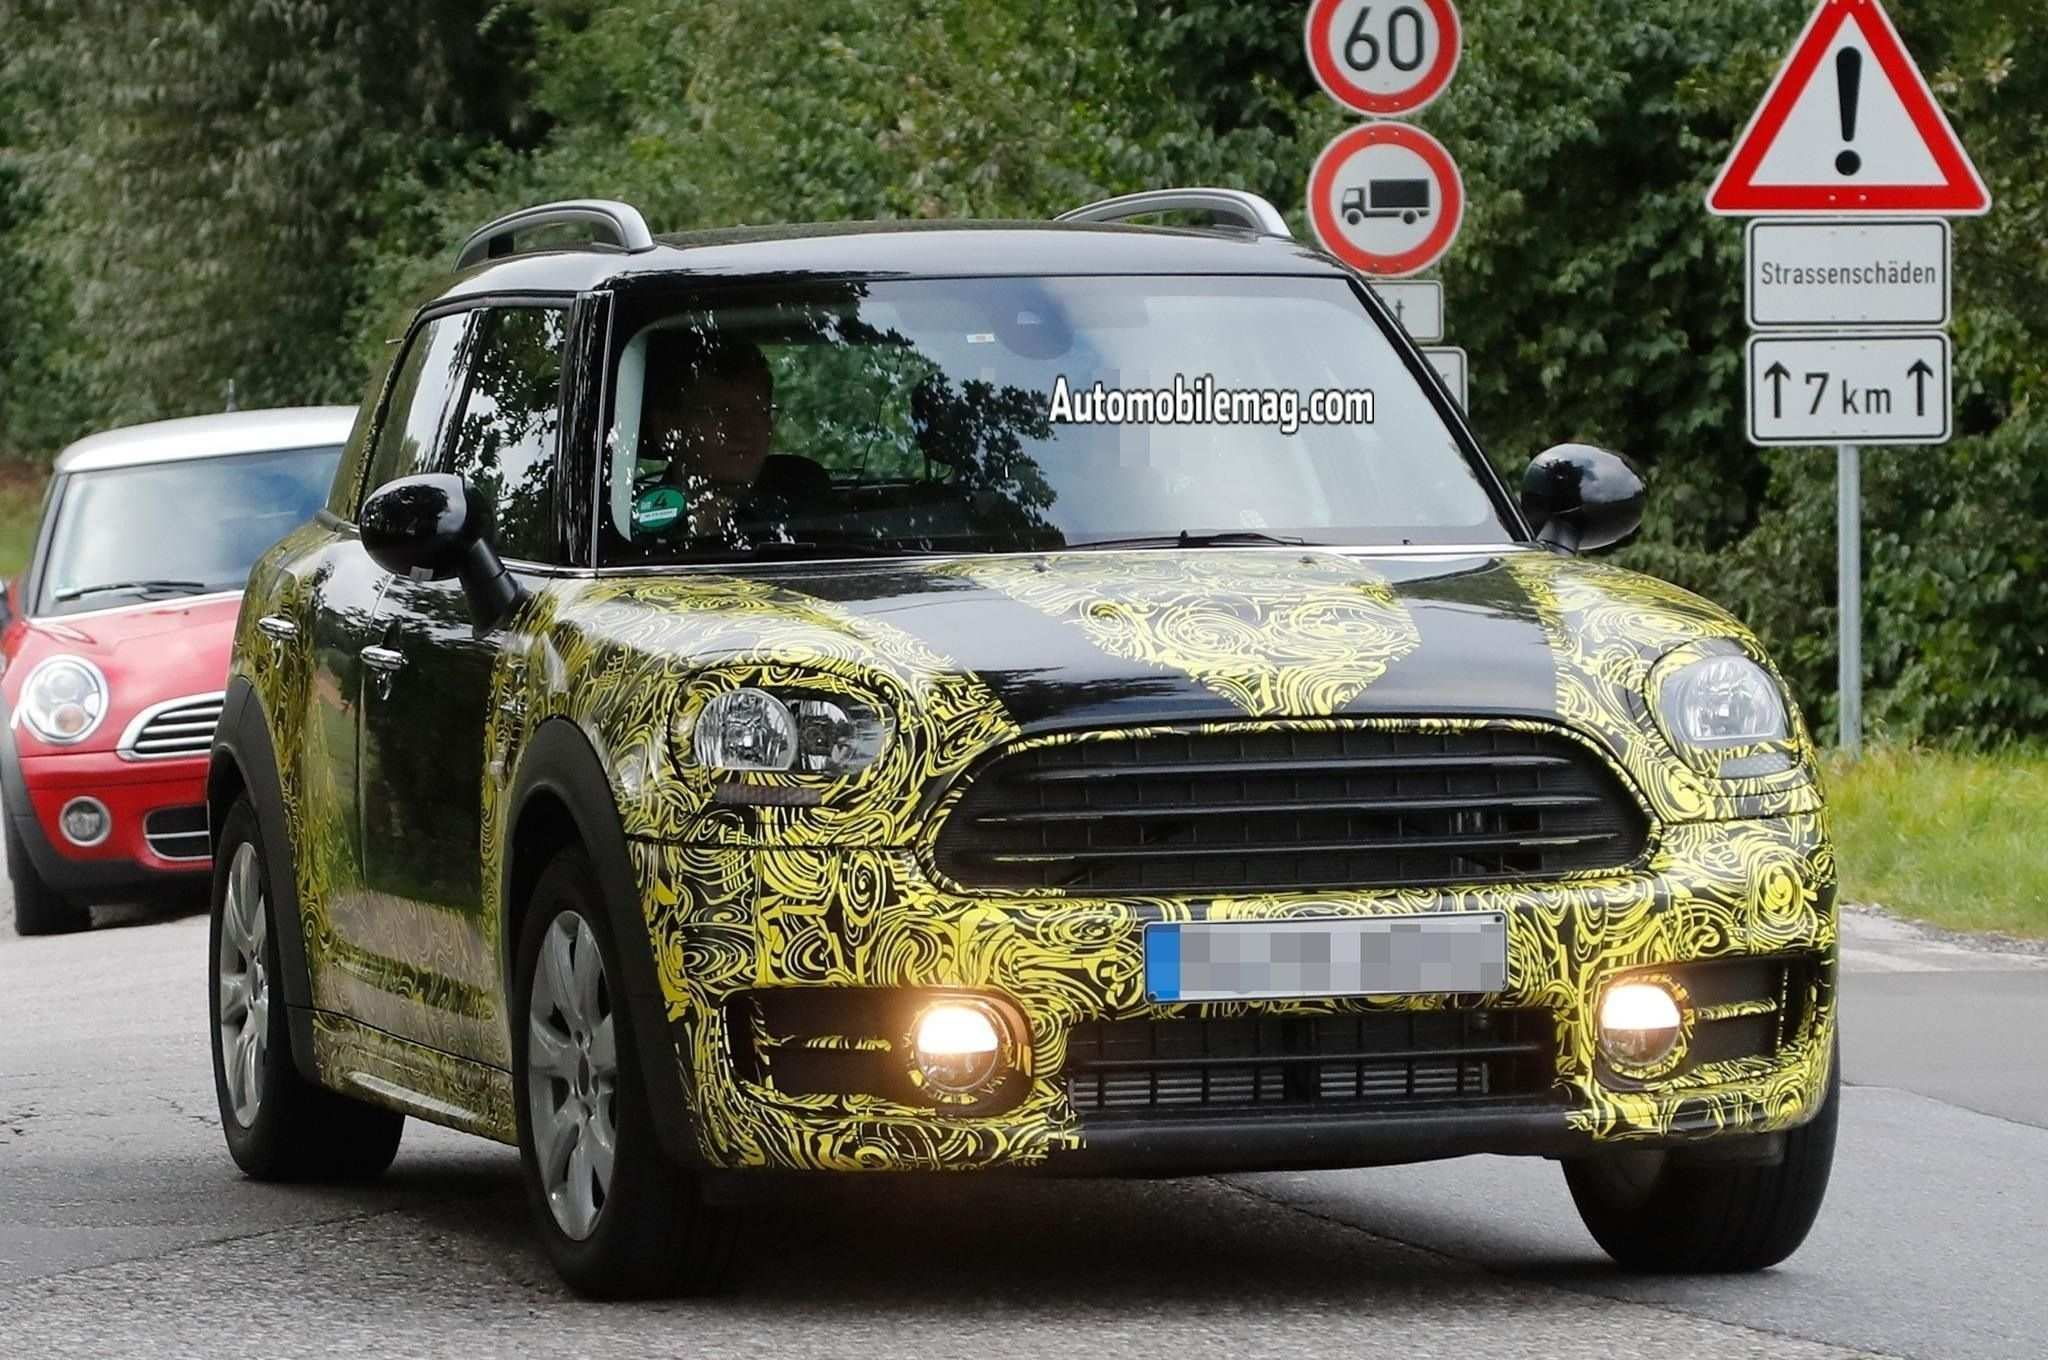 82 All New 2019 Spy Shots Mini Countryman Redesign And Concept